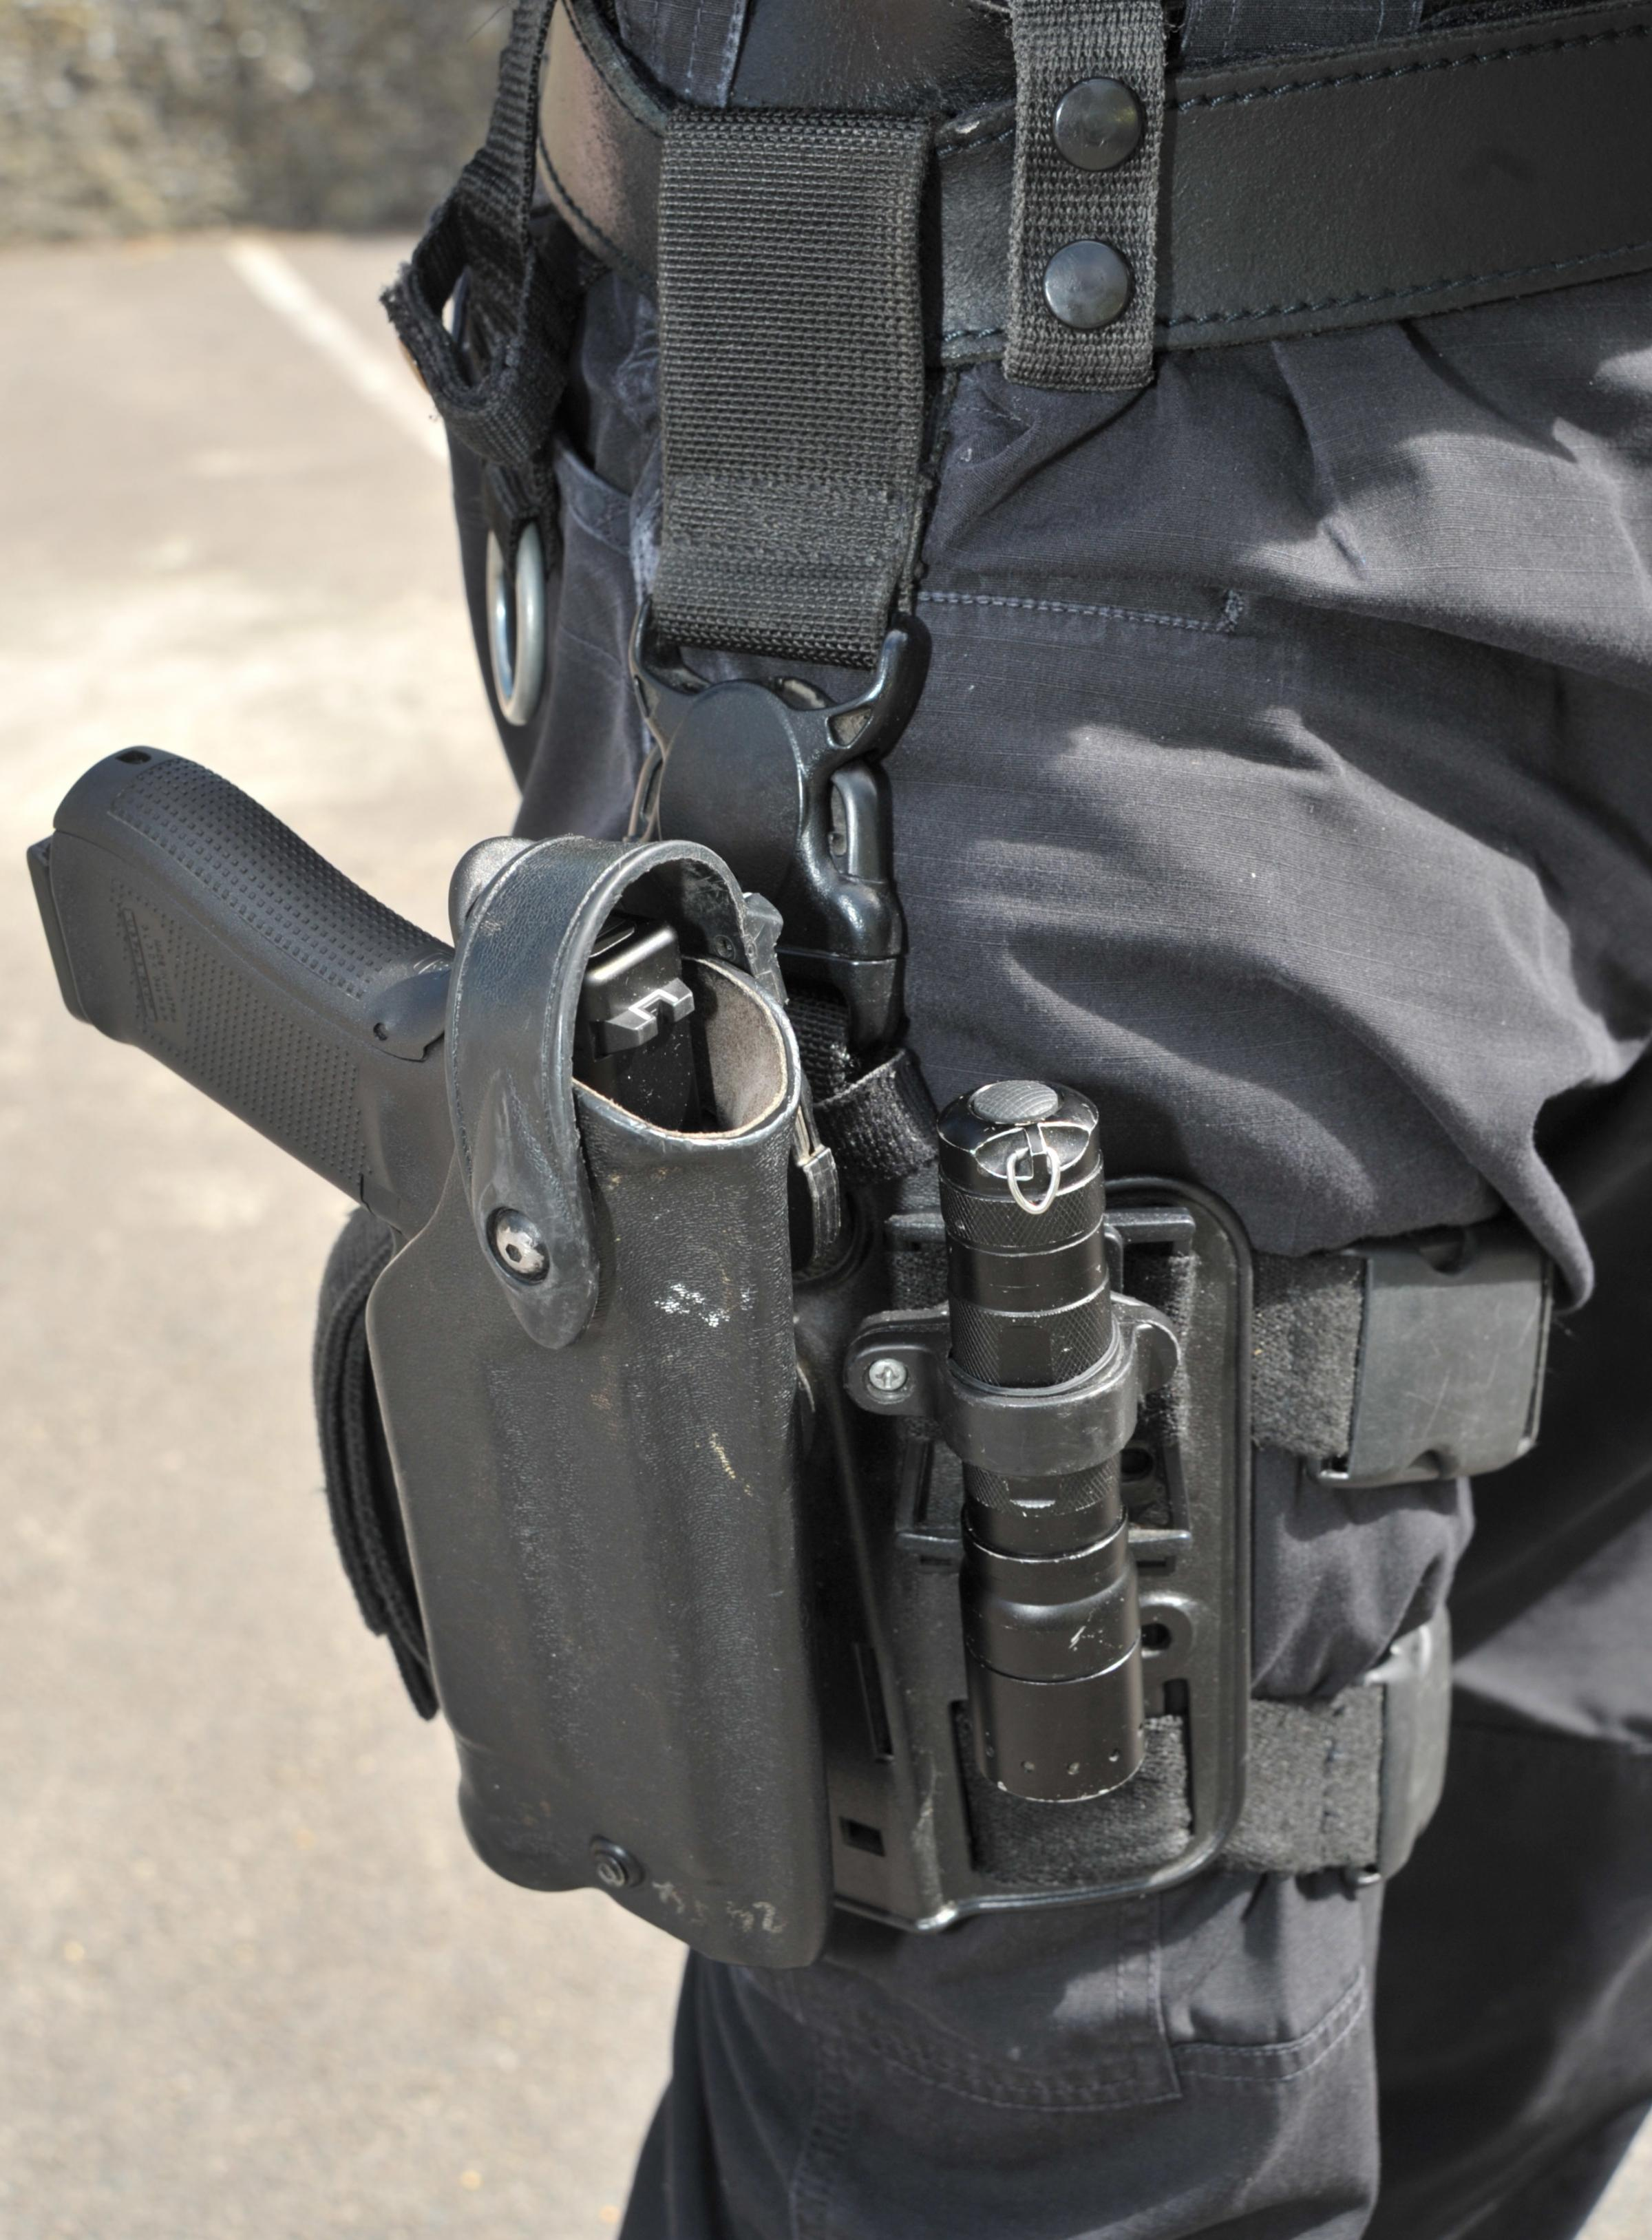 Gun reports to the police in Wiltshire hit 11-year high